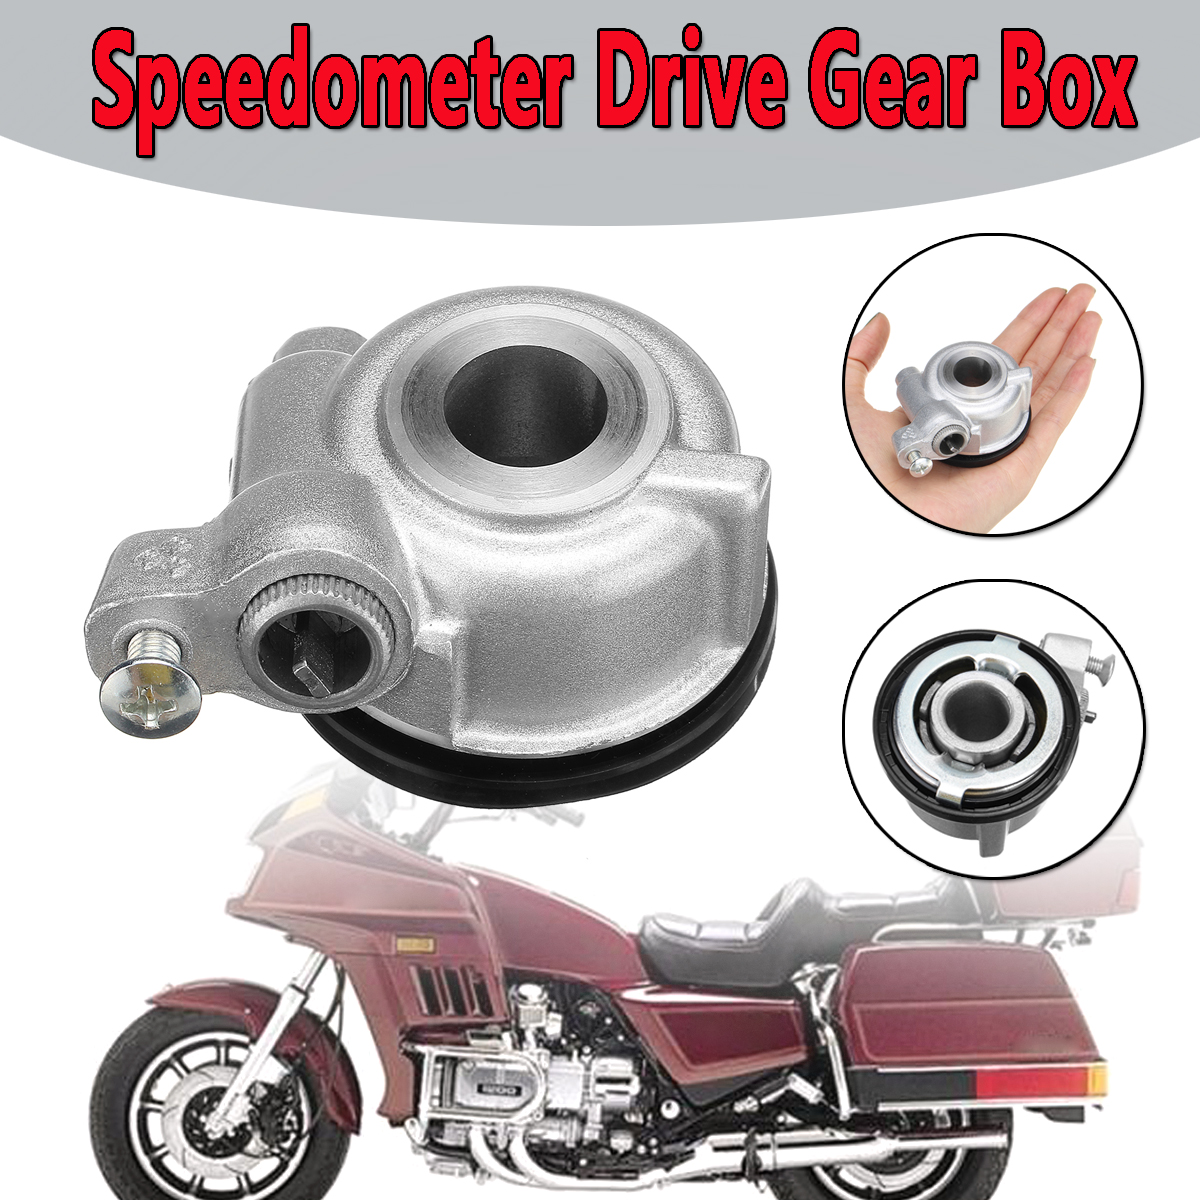 small resolution of motorcycle speedometer drive gear box new fits for honda goldwing gl1200 1984 1987 scooter parts mg9 013 in covers ornamental mouldings from automobiles